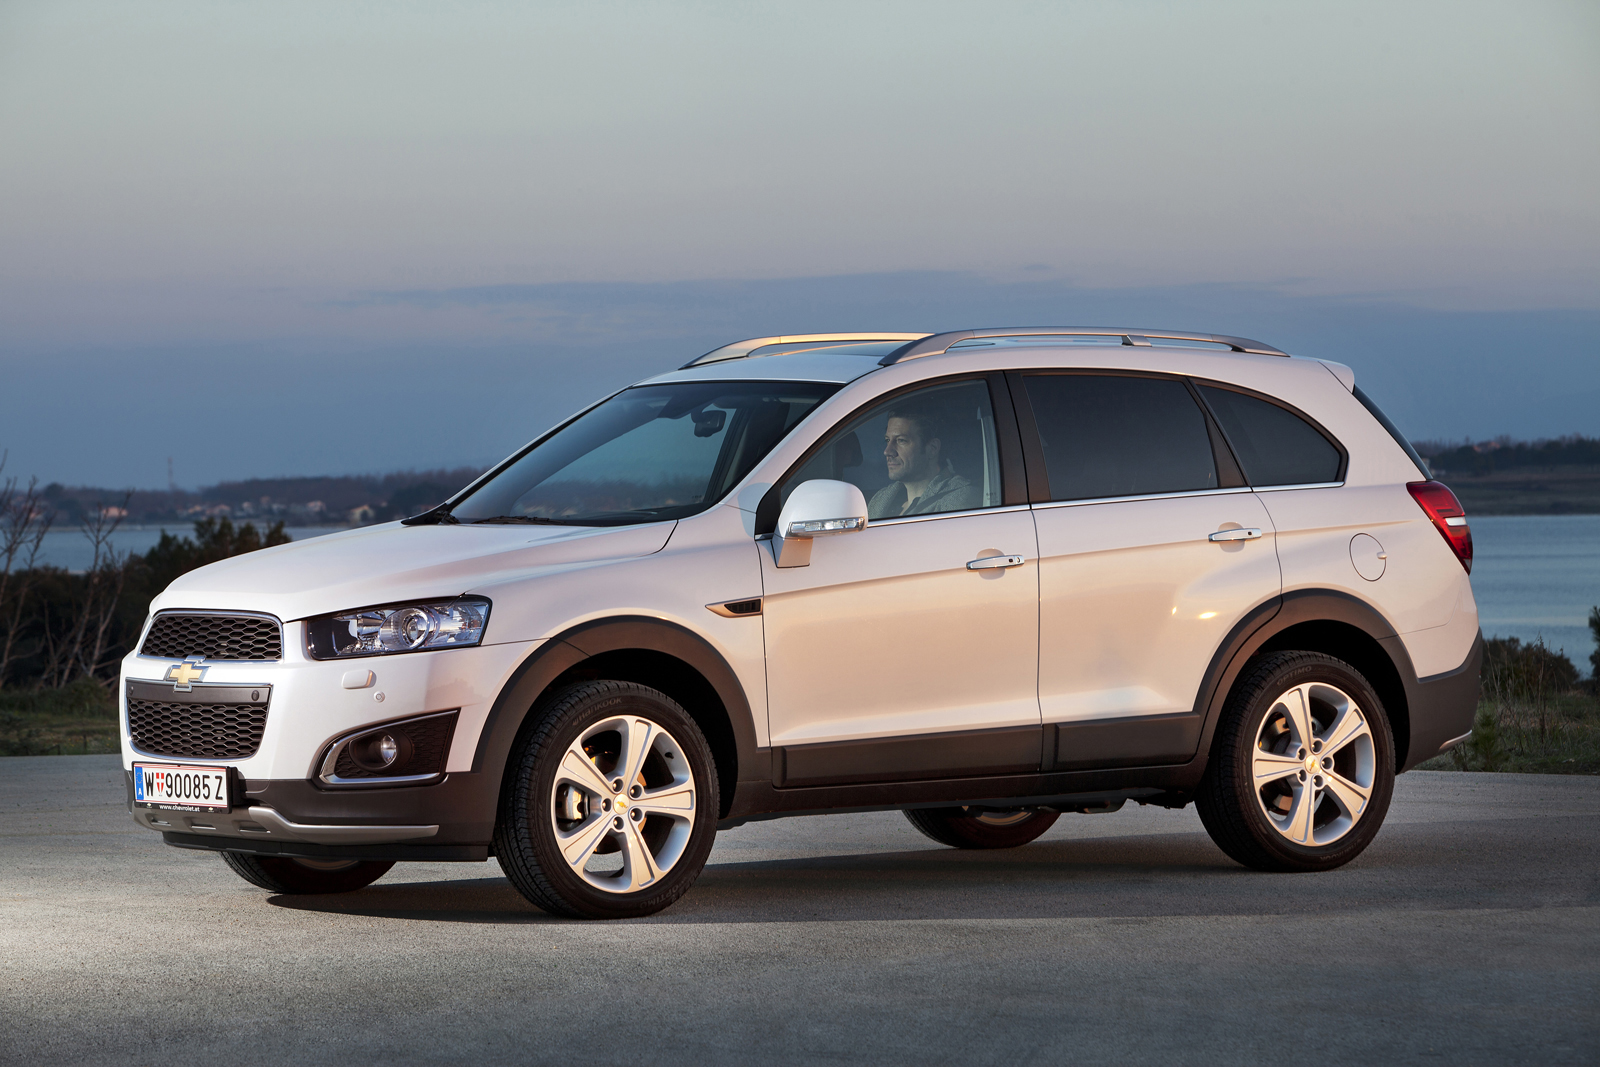 Used 2013 Chevrolet Suv Values Nadaguides | 2017 - 2018 Cars Reviews